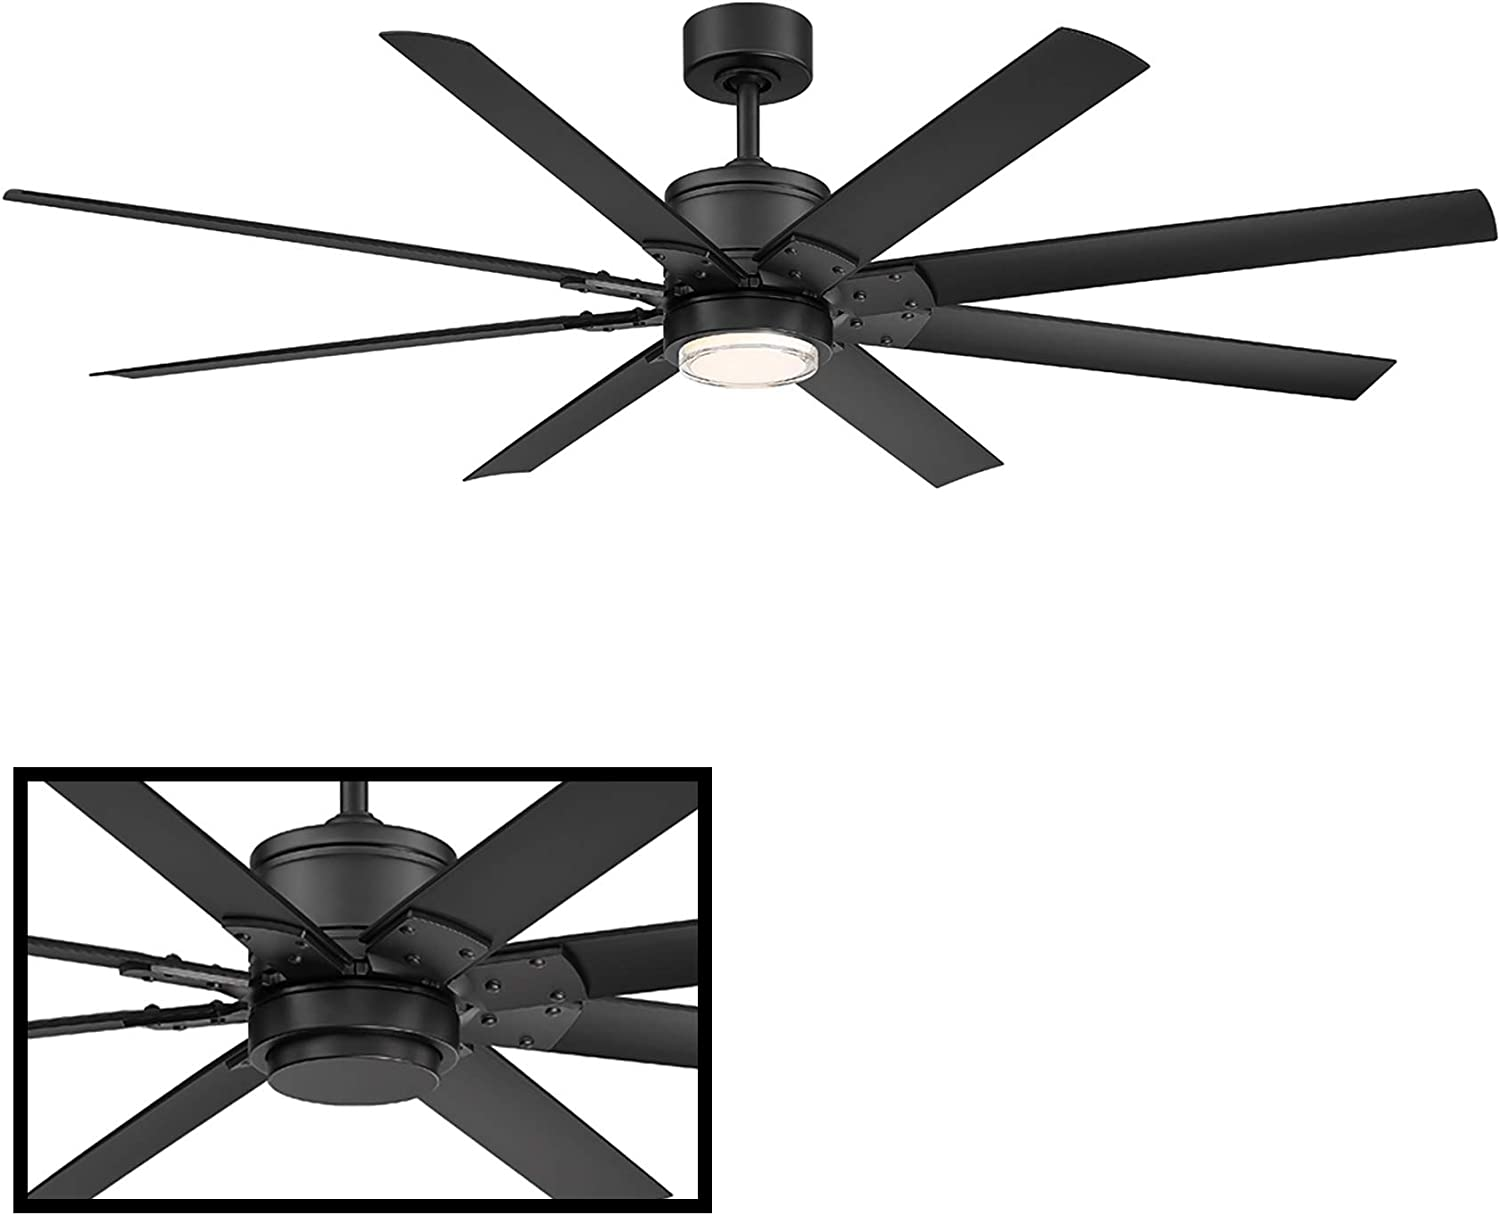 Renegade 52 in. 8 Blade Matte Black Smart Ceiling Fan with 3000K Light Kit and Remote works with iOS/Android app, Alexa, Google Assistant, SmartThings, Control4, & more